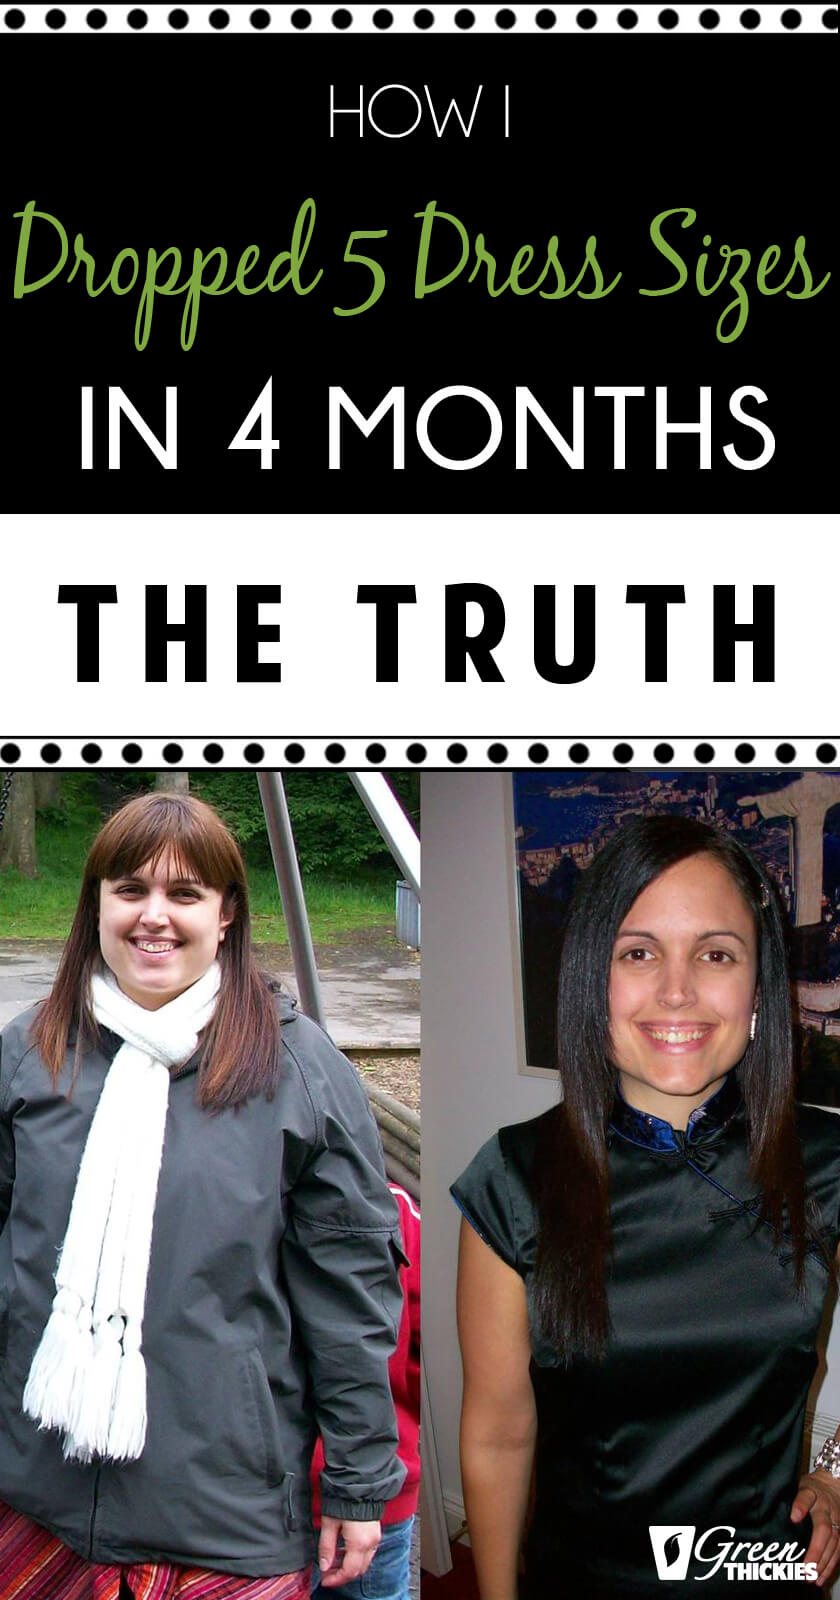 My health went downhill with chronic fatigue syndrome, allergies, asthma, eczema, and so much more and I put on 56 pounds. I tried every diet out there and nothing was working until I changed my mindset. When I started focusing on health, I finally learned the secret to getting healthy and losing the fat. The weight dropped off me so fast when I made these changes.#greenthickies #weightloss #health #healthy #secrettohealth #losefat #fitness #loseweight #naturalweightloss #diet #healthydiet